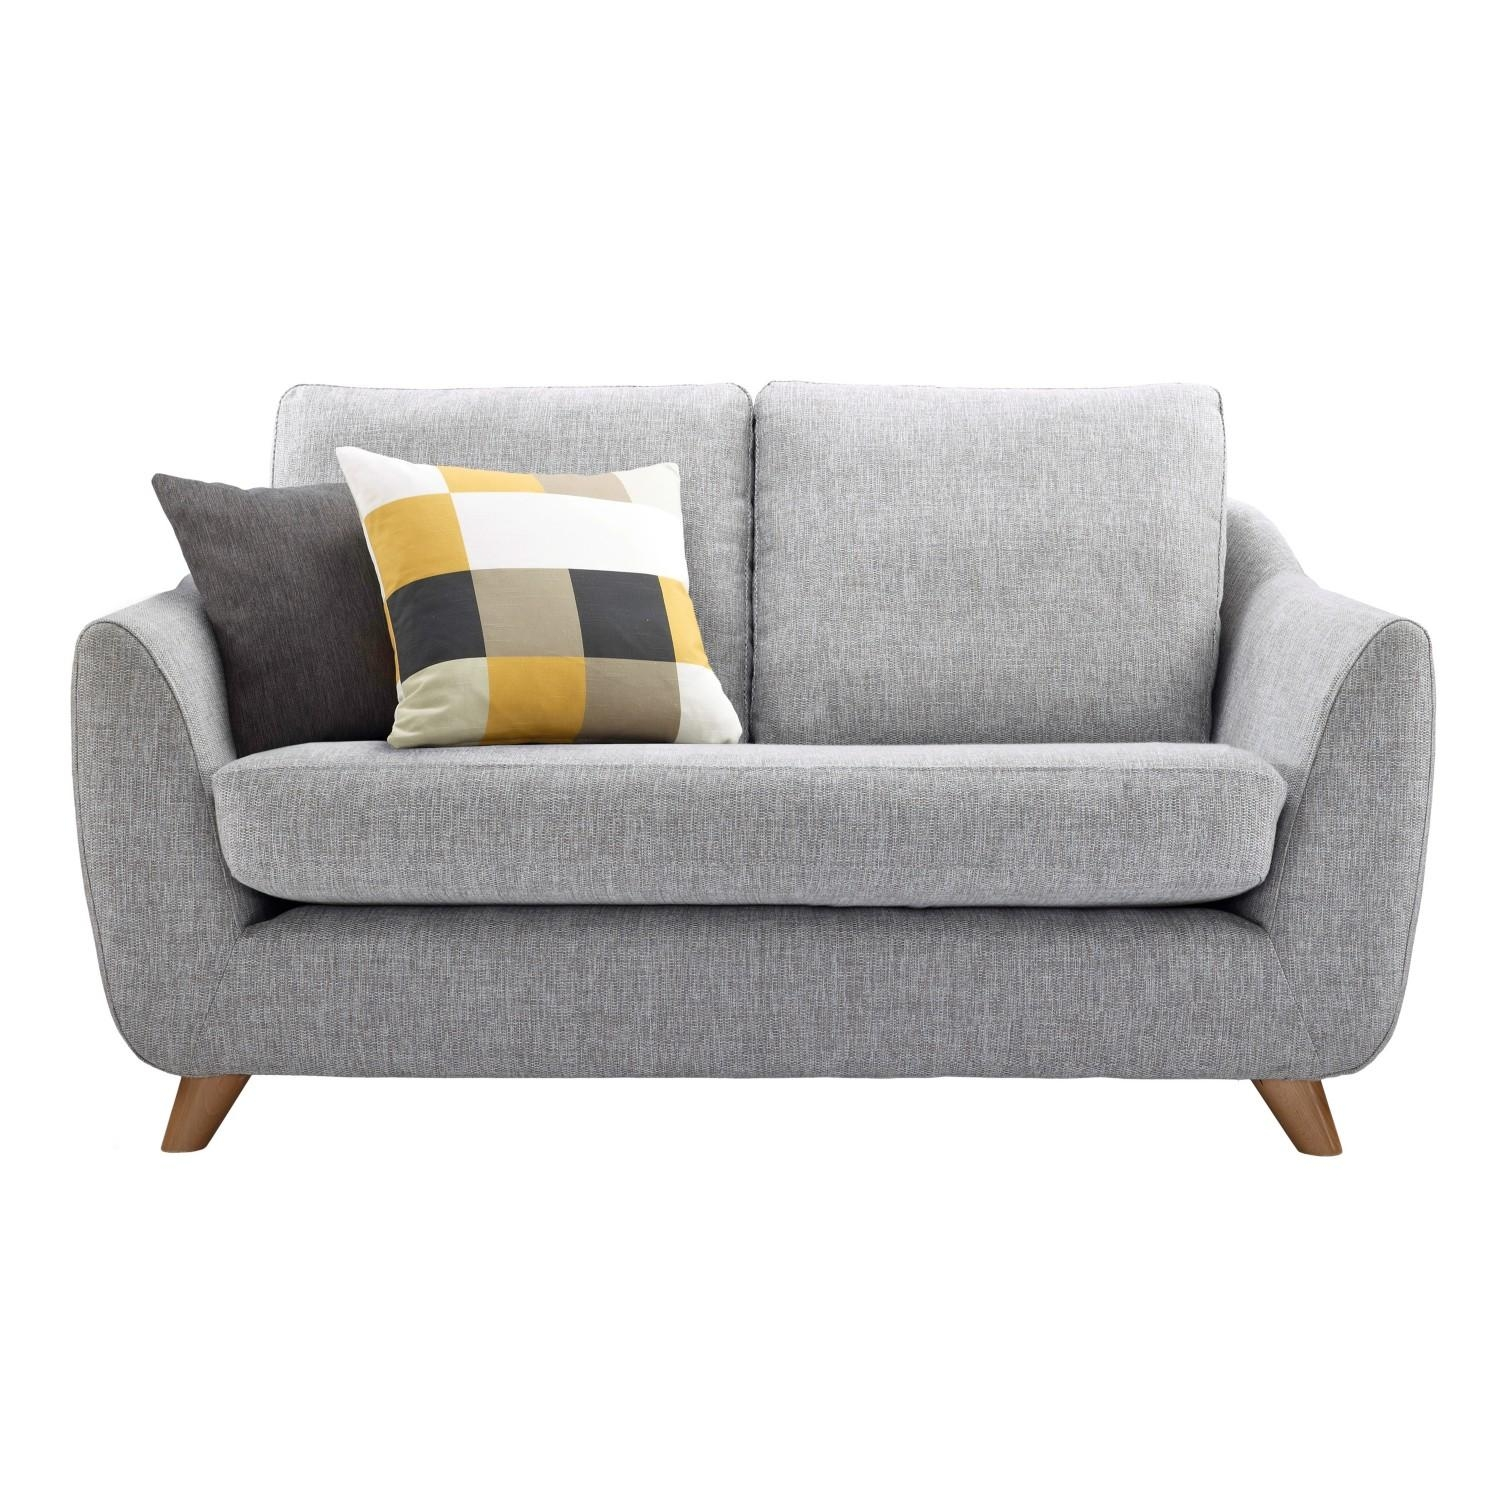 Furniture: Interior Modern Sofa Bed Cute Sofas Design Interior With Modern Sofas Houston (View 3 of 20)